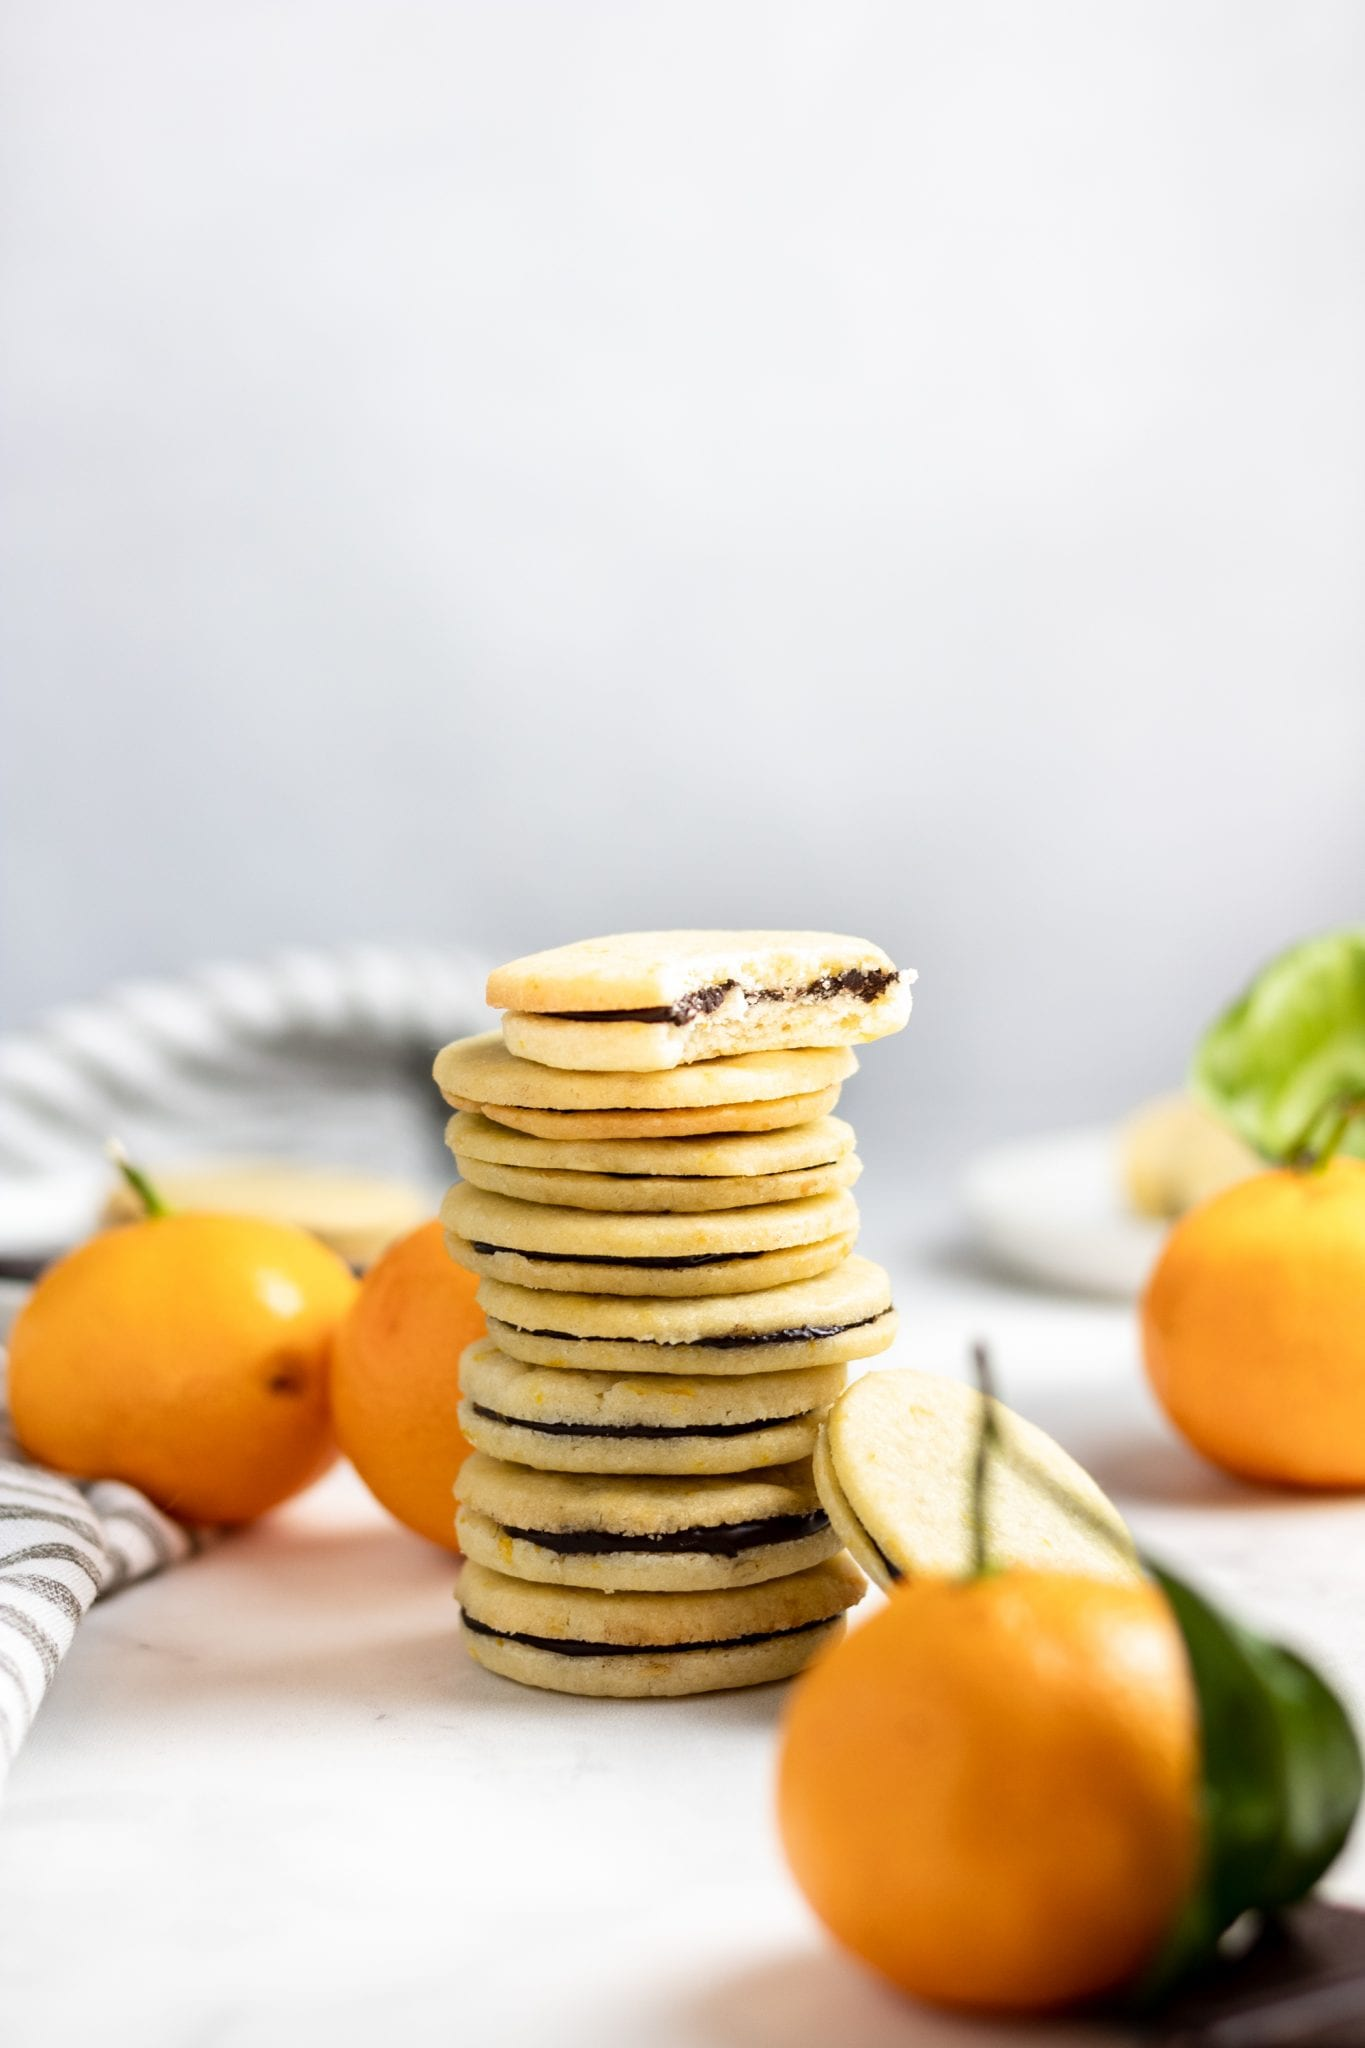 a stack of orange chocolate sandwich cookies with small oranges on a light background